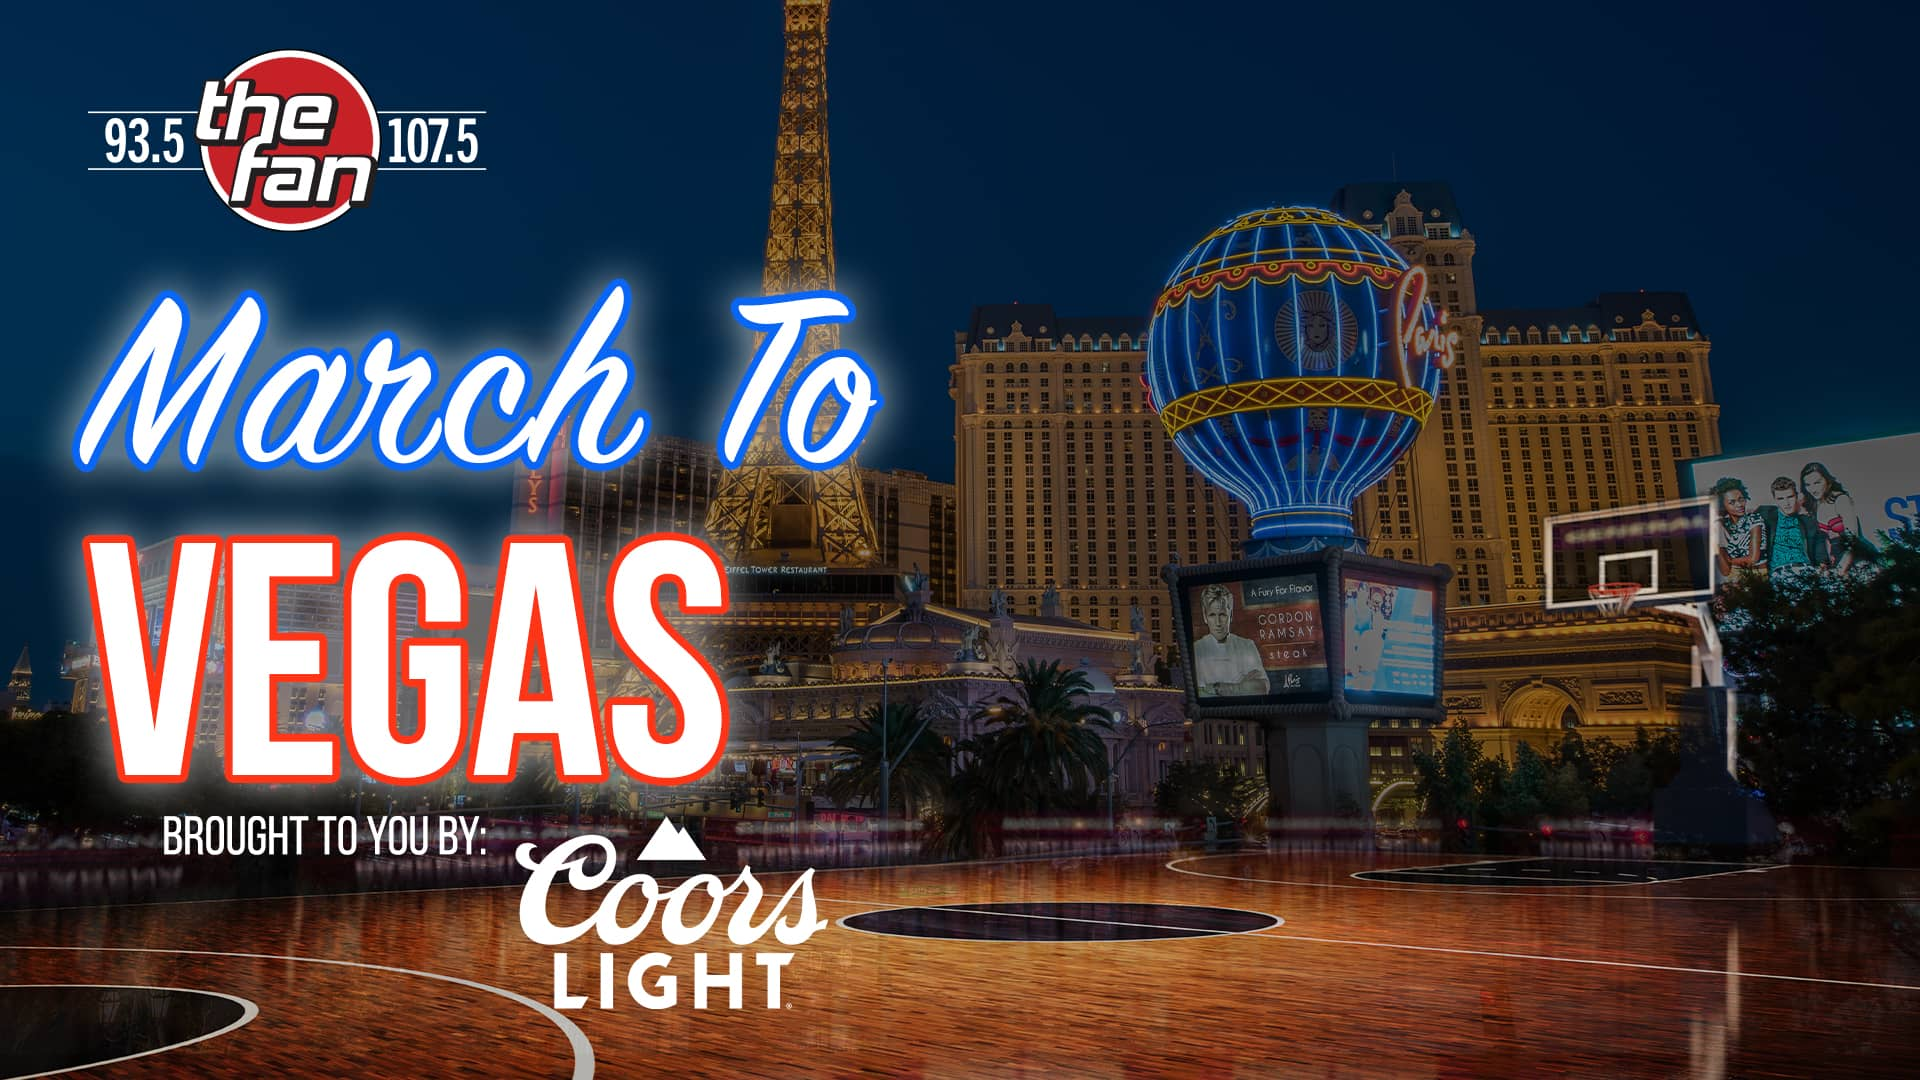 107.5 the fan March to Vegas presented by Coors Light